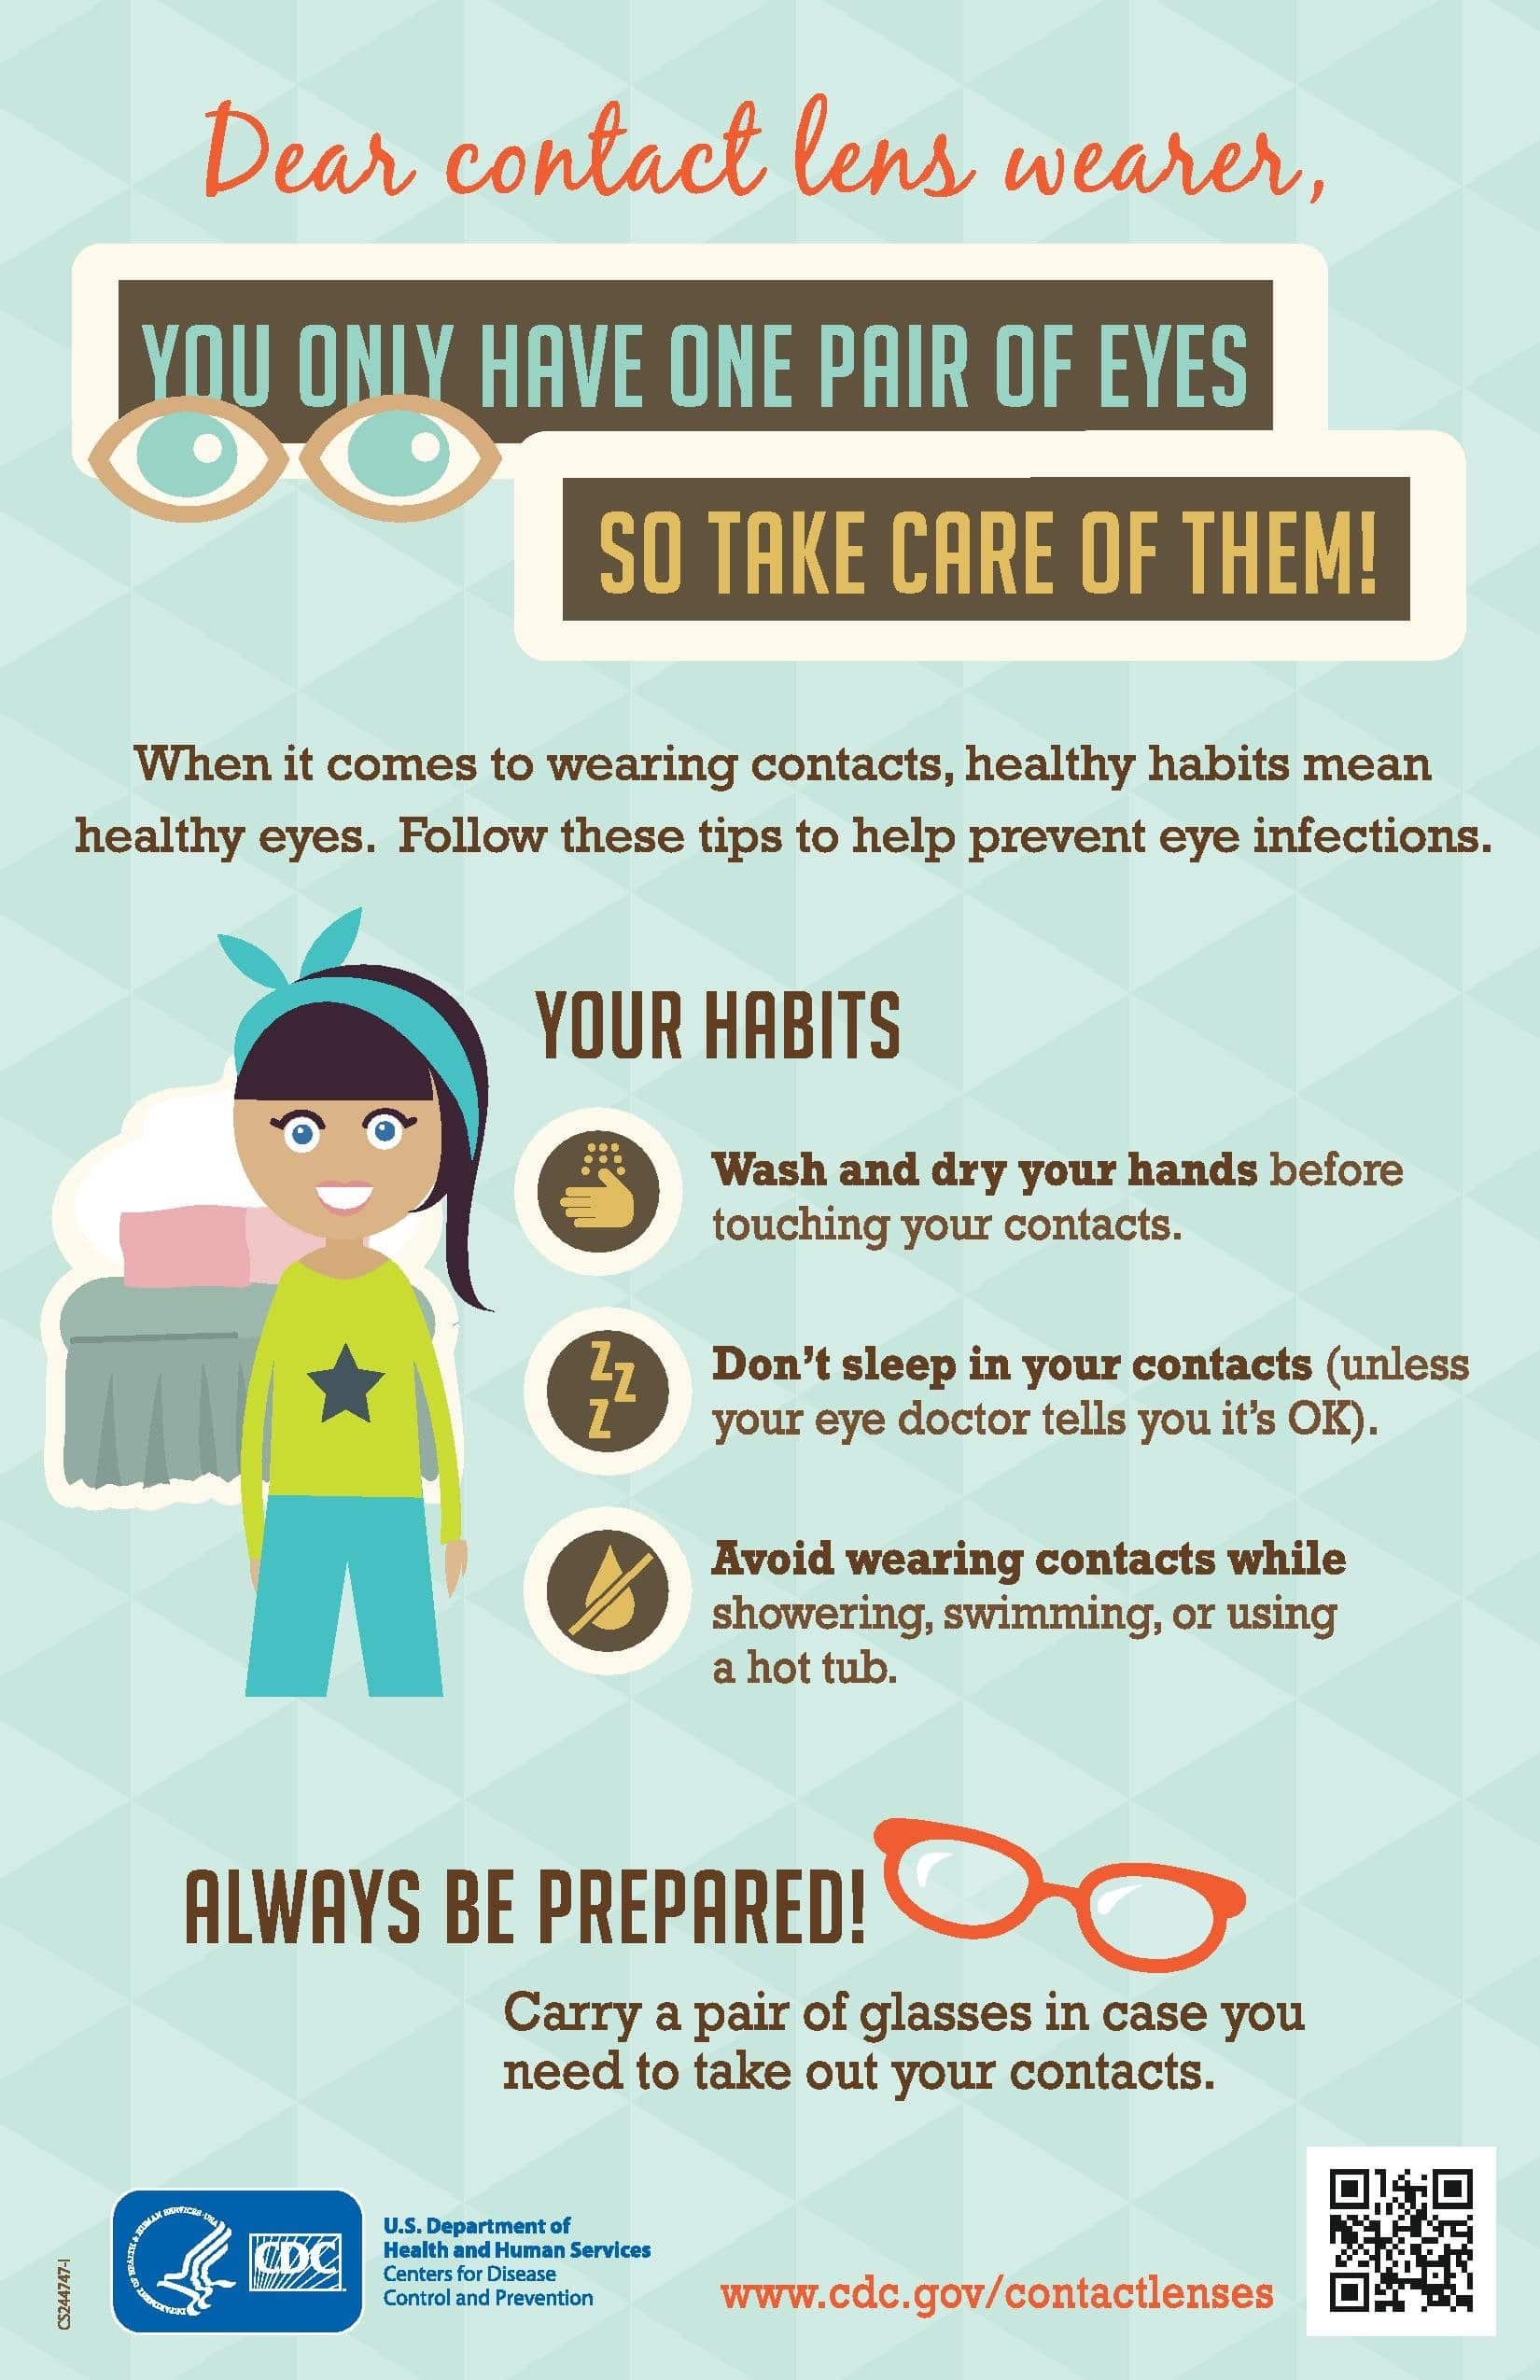 How to Care for Your Contact Lenses and Eyes